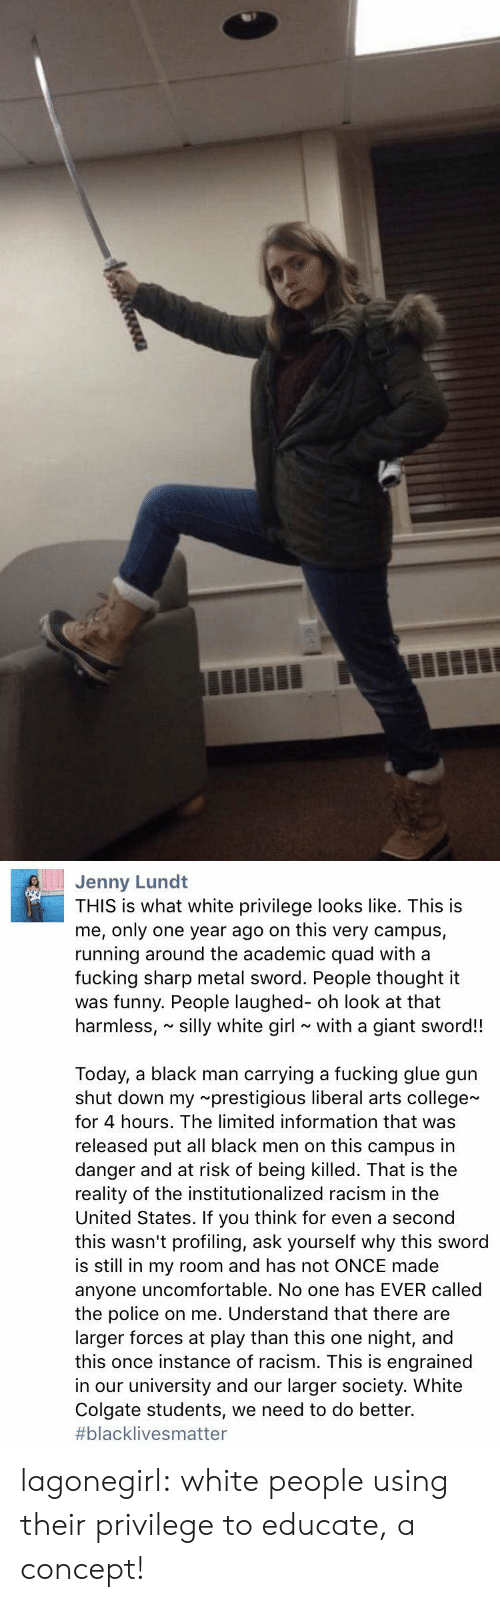 harmless: Jenny Lund  THIS is what white privilege looks like. This is  me, only one year ago on this very campus,  running around the academic quad with a  fucking sharp metal sword. People thought it  was funny. People laughed- oh look at that  harmless, silly white girl with a giant sword!!  Today, a black man carrying a fucking glue gun  shut down my prestigious liberal arts college  for 4 hours. The limited information that was  released put all black men on this campus in  danger and at risk of being killed. That is the  reality of the institutionalized racism in the  United States. If you think for even a second  this wasn't profiling, ask yourself why this sword  is still in my room and has not ONCE made  anyone uncomfortable. No one has EVER called  the police on me. Understand that there are  larger forces at play than this one night, and  this once instance of racism. This is engrained  in our university and our larger society. White  Colgate students, we need to do better.  #blackIive s matter lagonegirl:   white people using their privilege to educate, a concept!